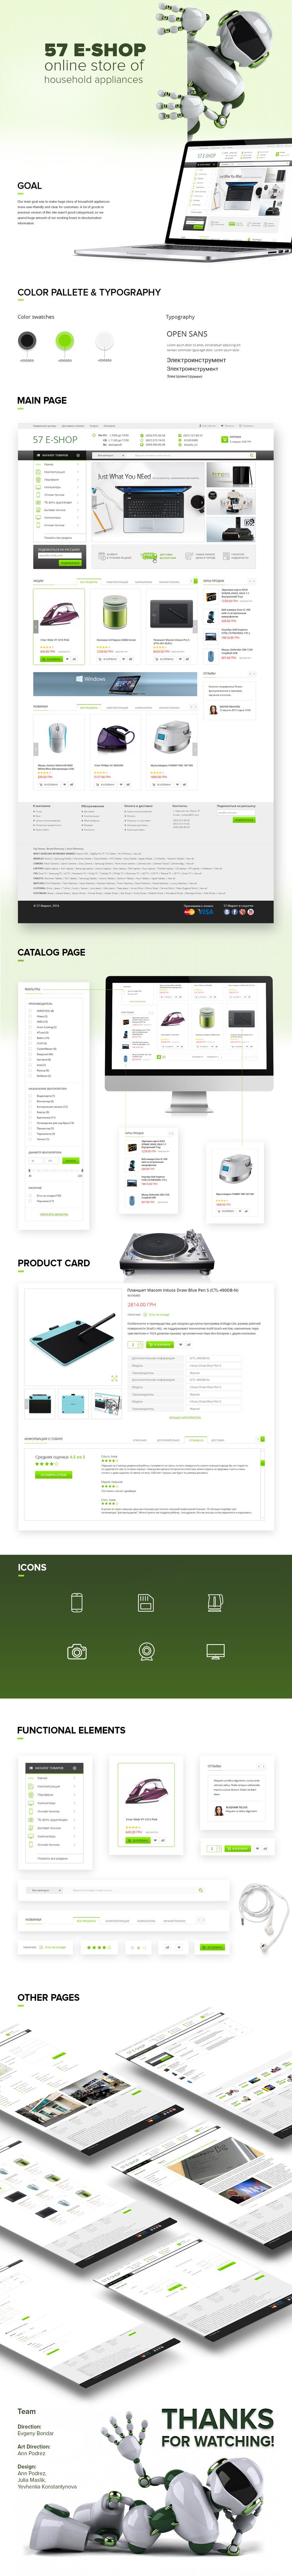 "Check out web design work on my @Behance portfolio: ""Website for Online Store of Household Appliances"" https://www.behance.net/gallery/46192637/Website-for-Online-Store-of-Household-Appliances Follow me: https://www.behance.net/Ginseng_g"